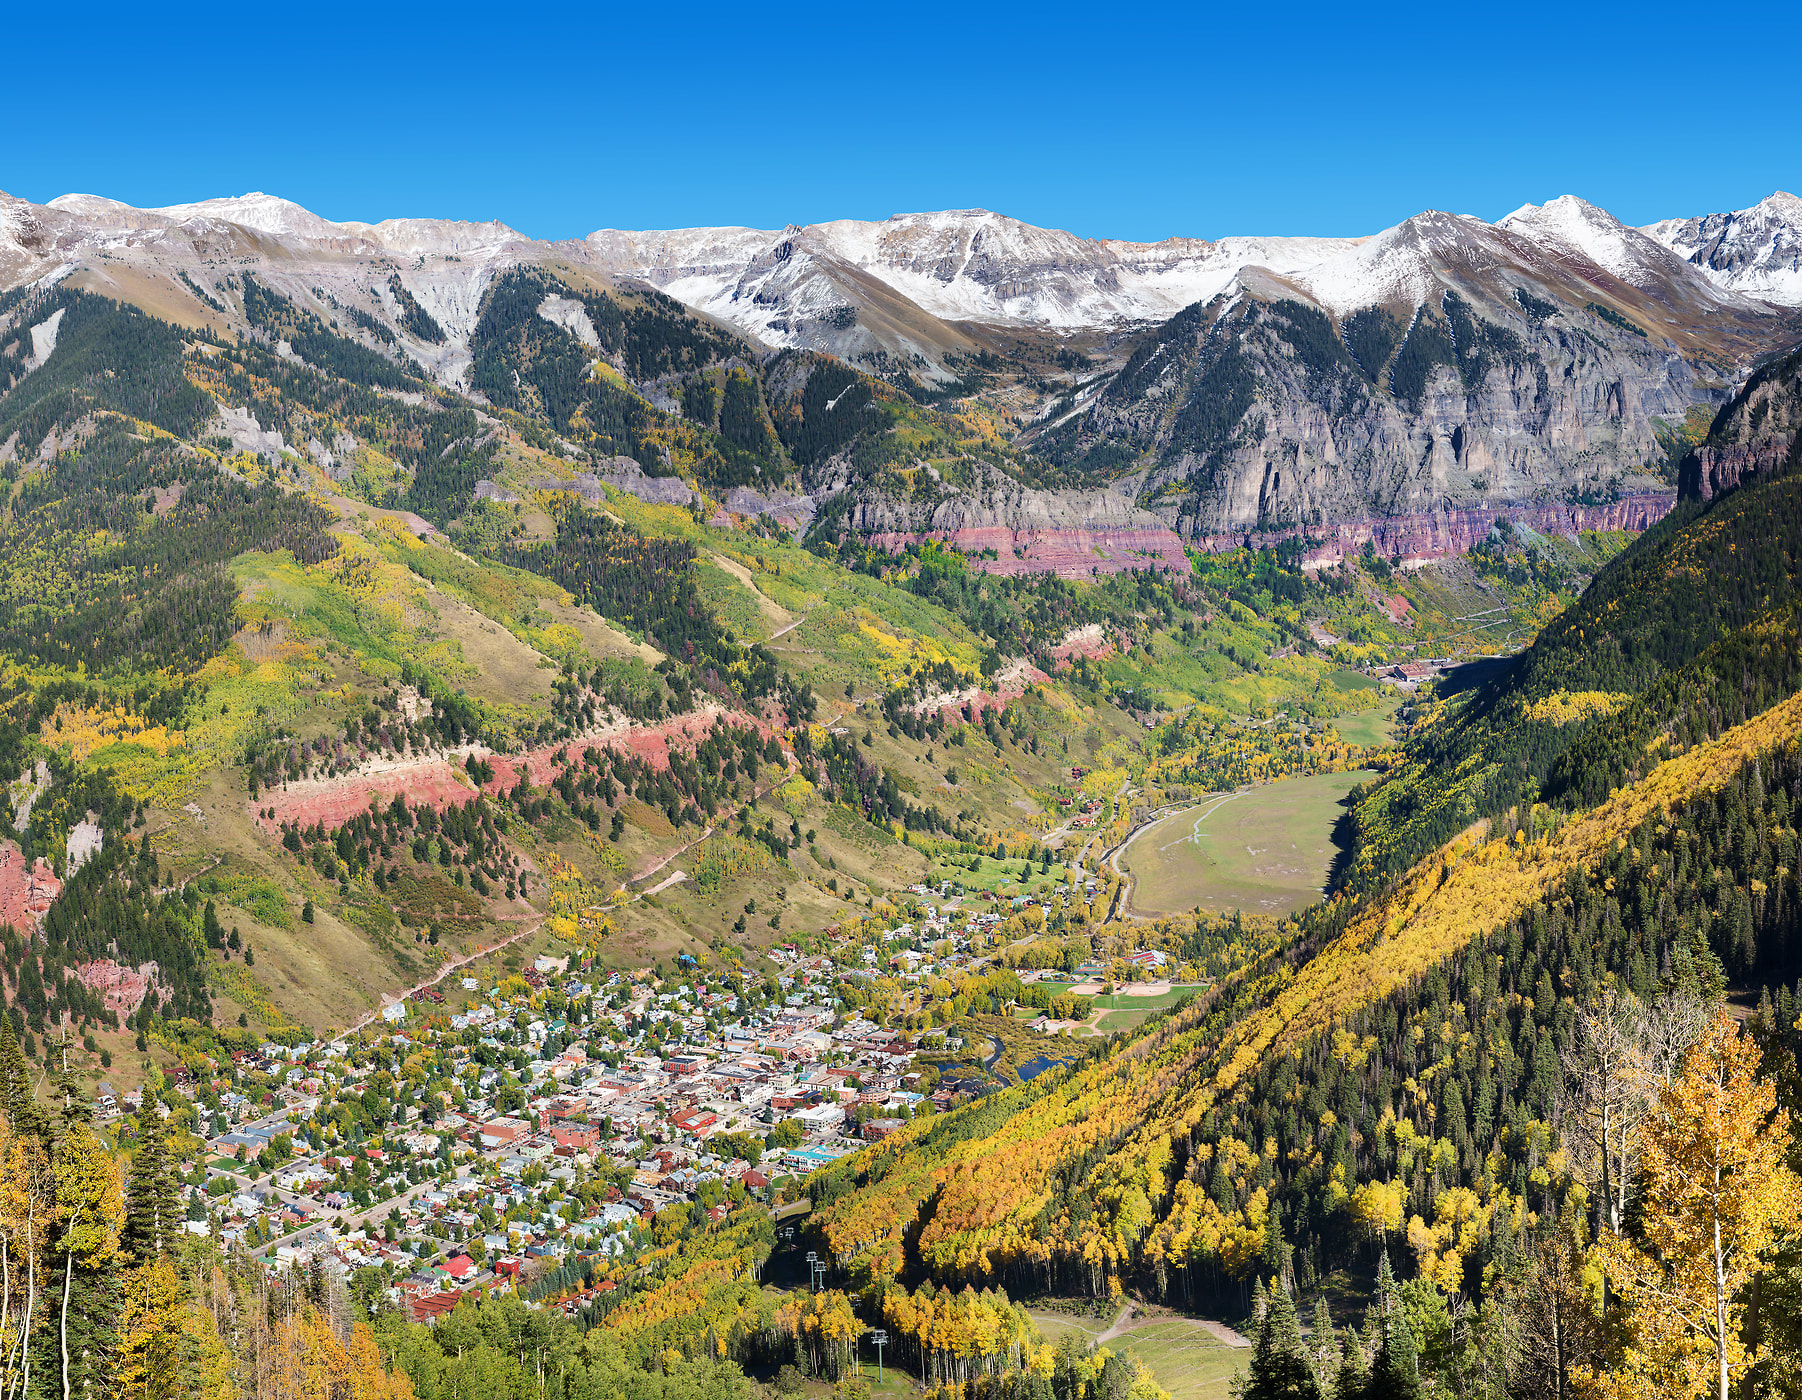 173 megapixels! A very high resolution, large-format VAST photo print of Telluride from a mountaintop looking down into the valley; landscape photograph created by Jim Tarpo in Telluride, Colorado